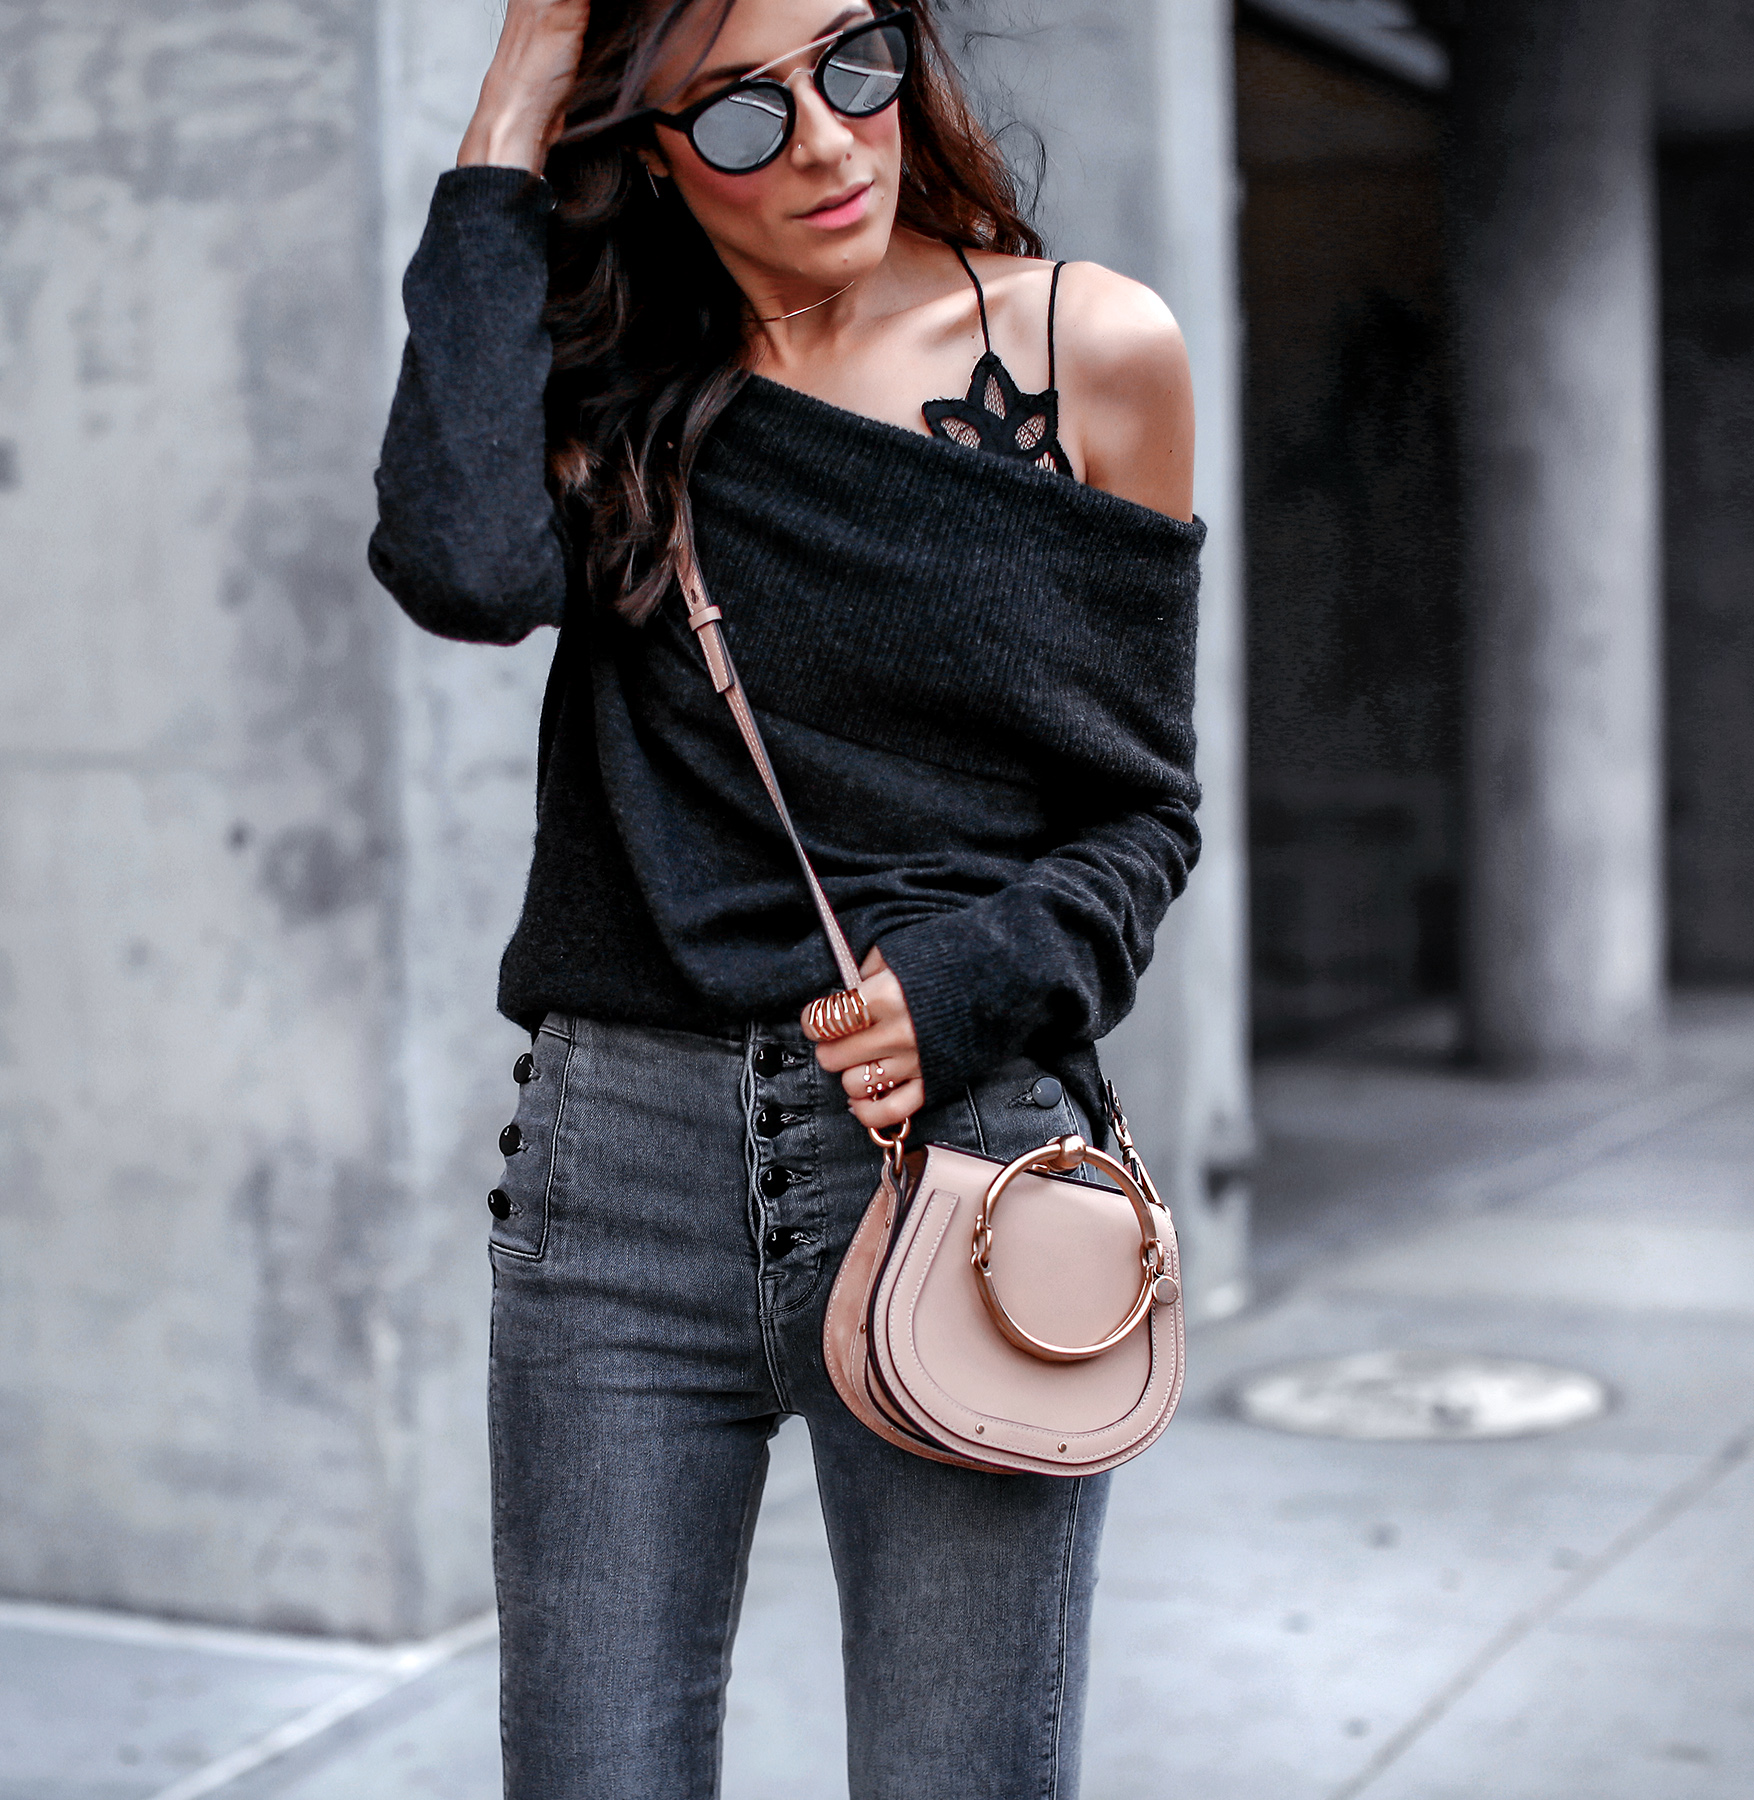 JBrand Jeans Joei Sweater Spring Fashion Chloe Nile Bag.jpg